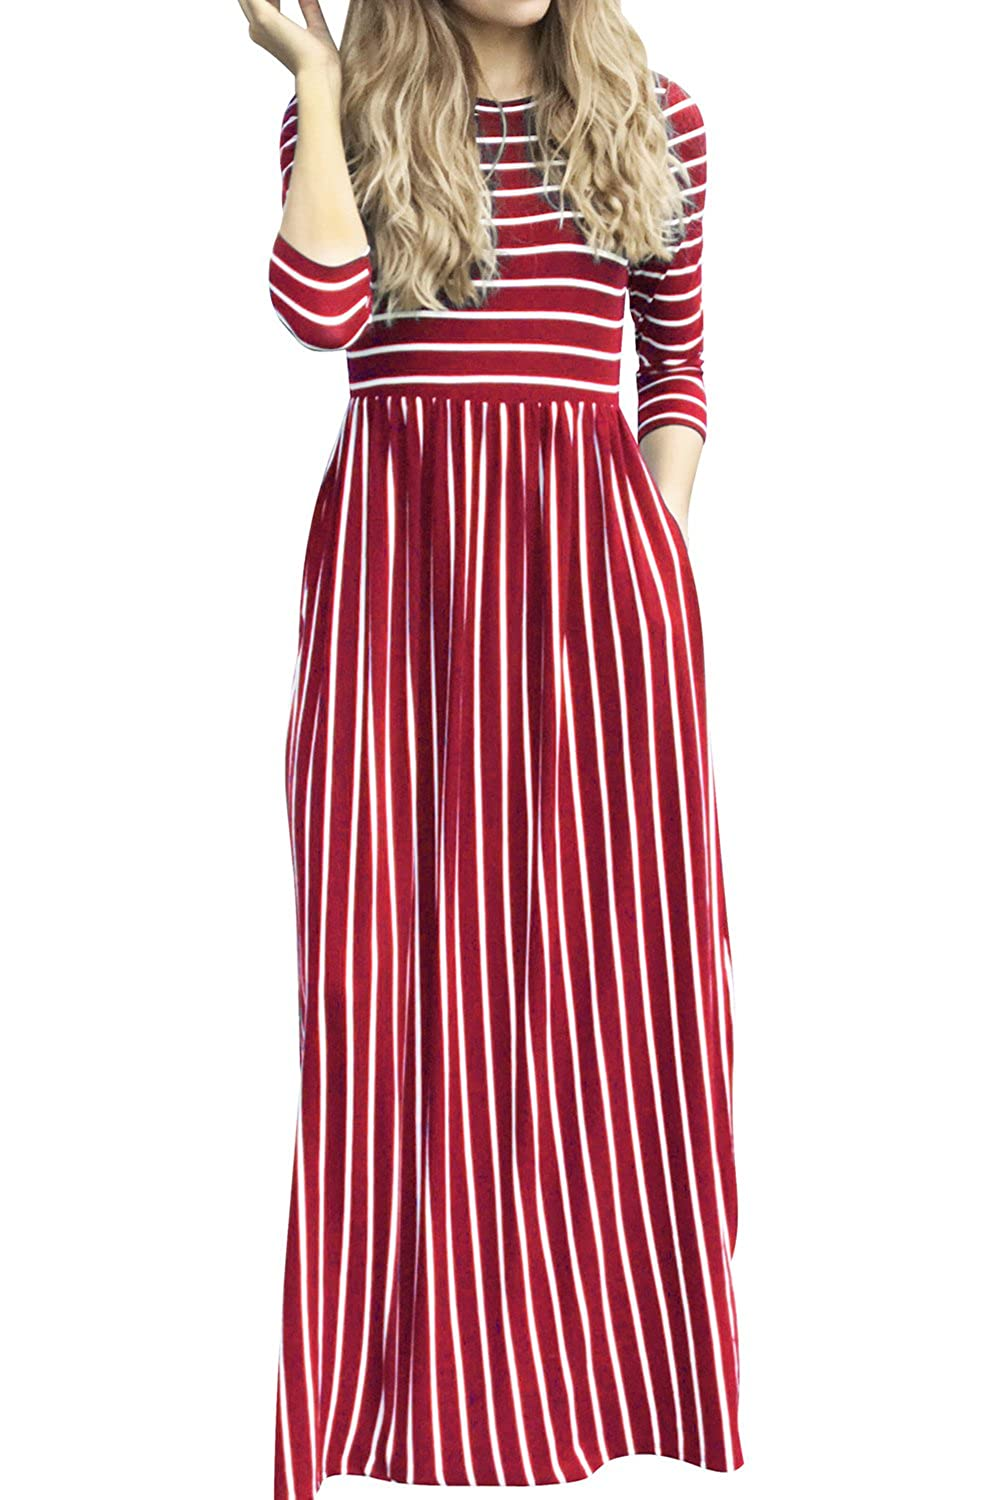 44a589138c17 Allfennler Women s 3 4 Sleeve Casual Loose Striped Dress with Pockets Floor  Length Elastic Waist Dress at Amazon Women s Clothing store